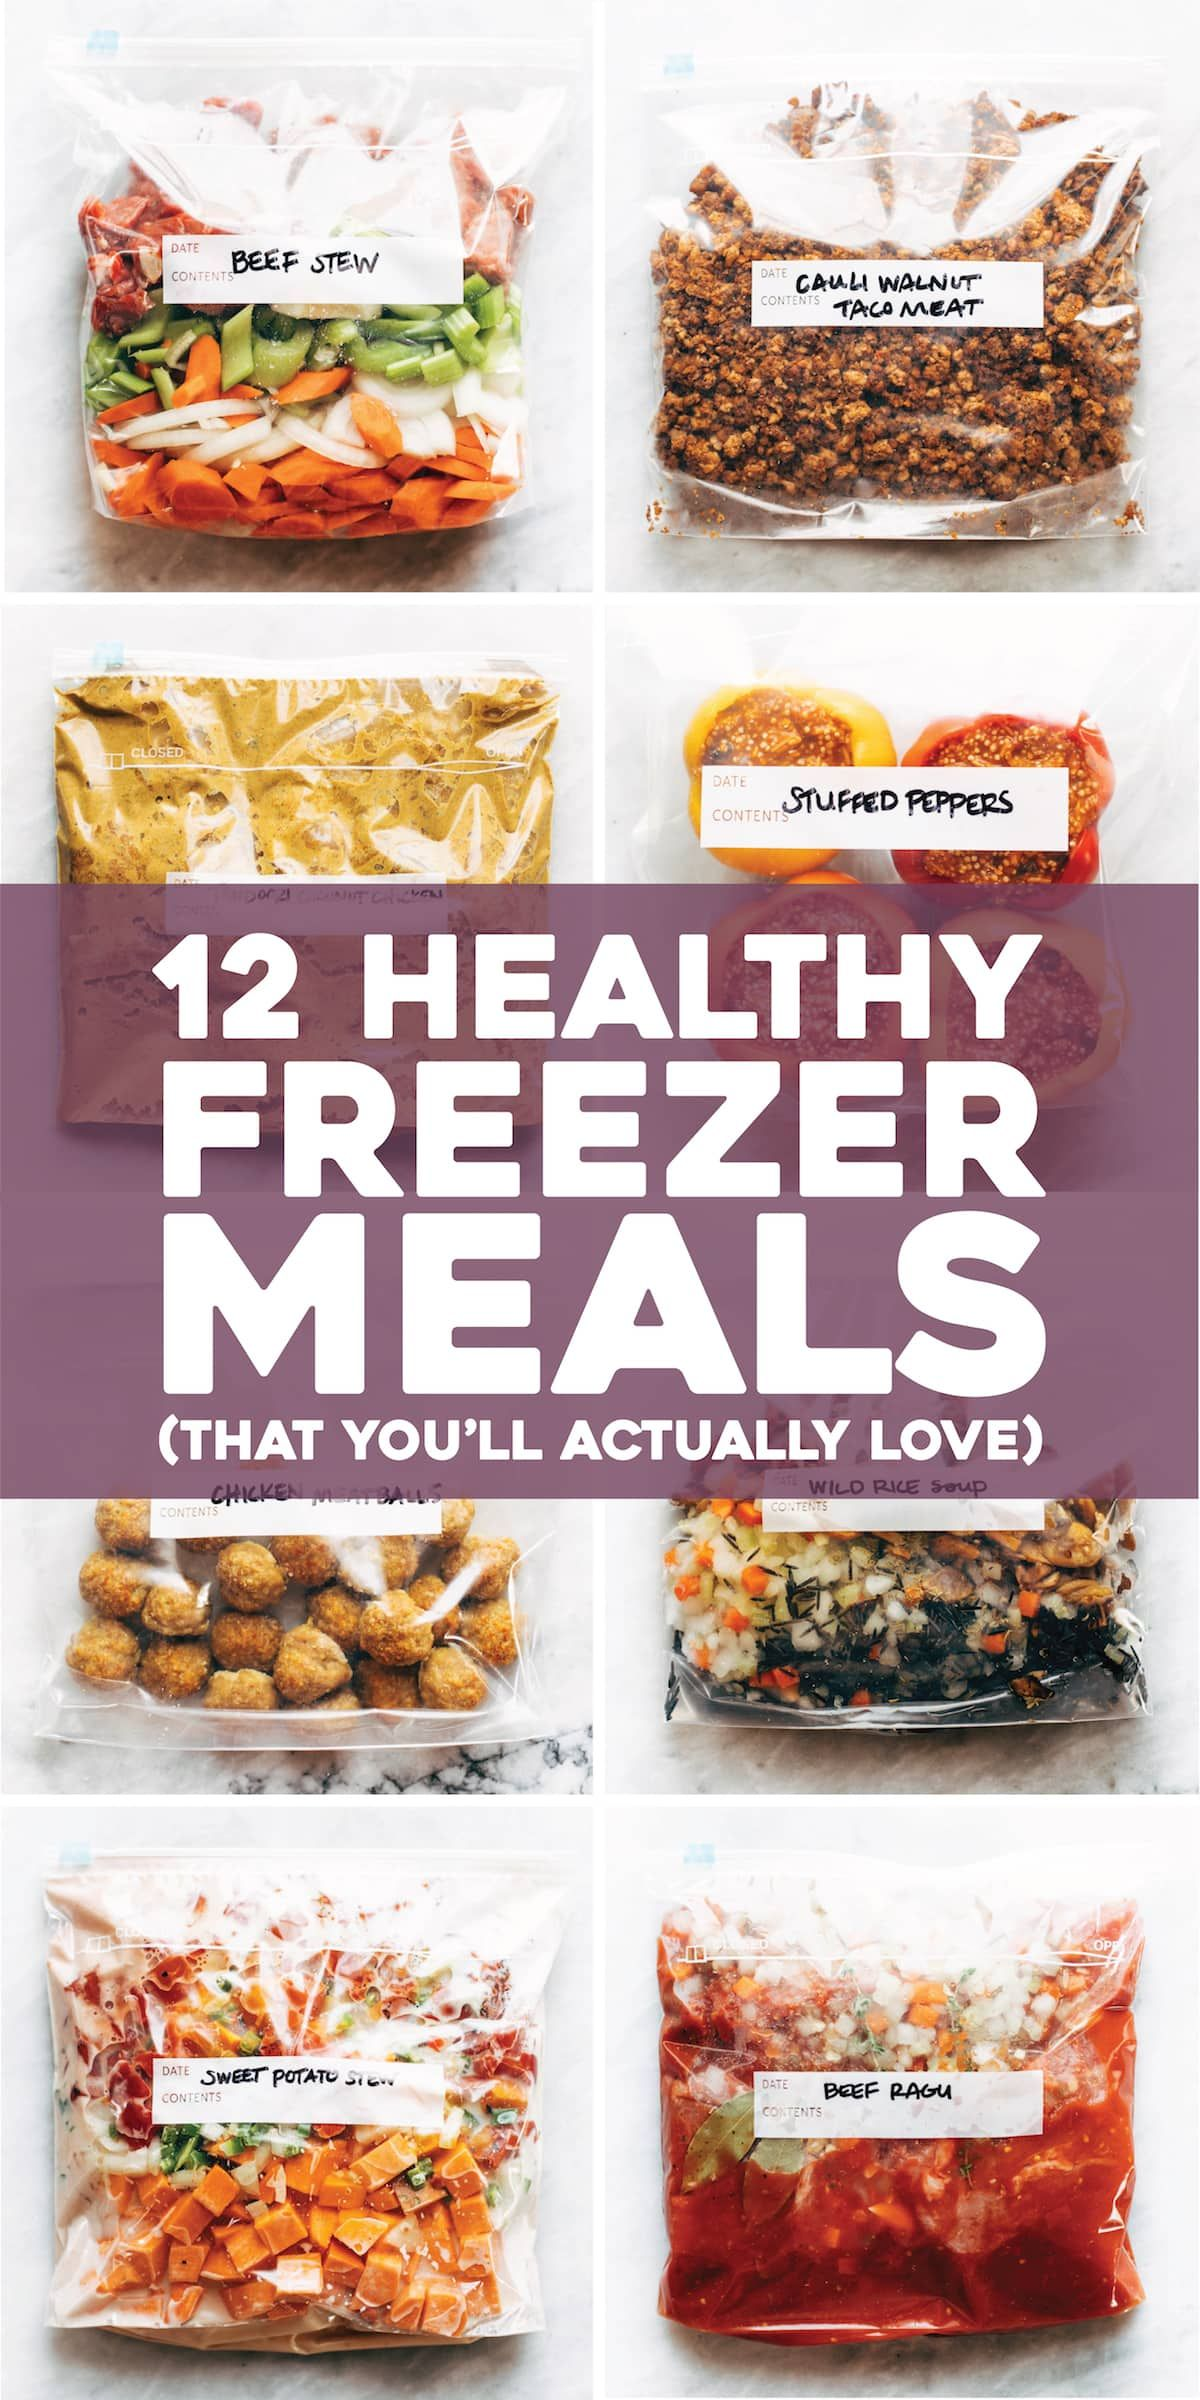 12 Healthy Freezer Meals (That You'll Actually Love images